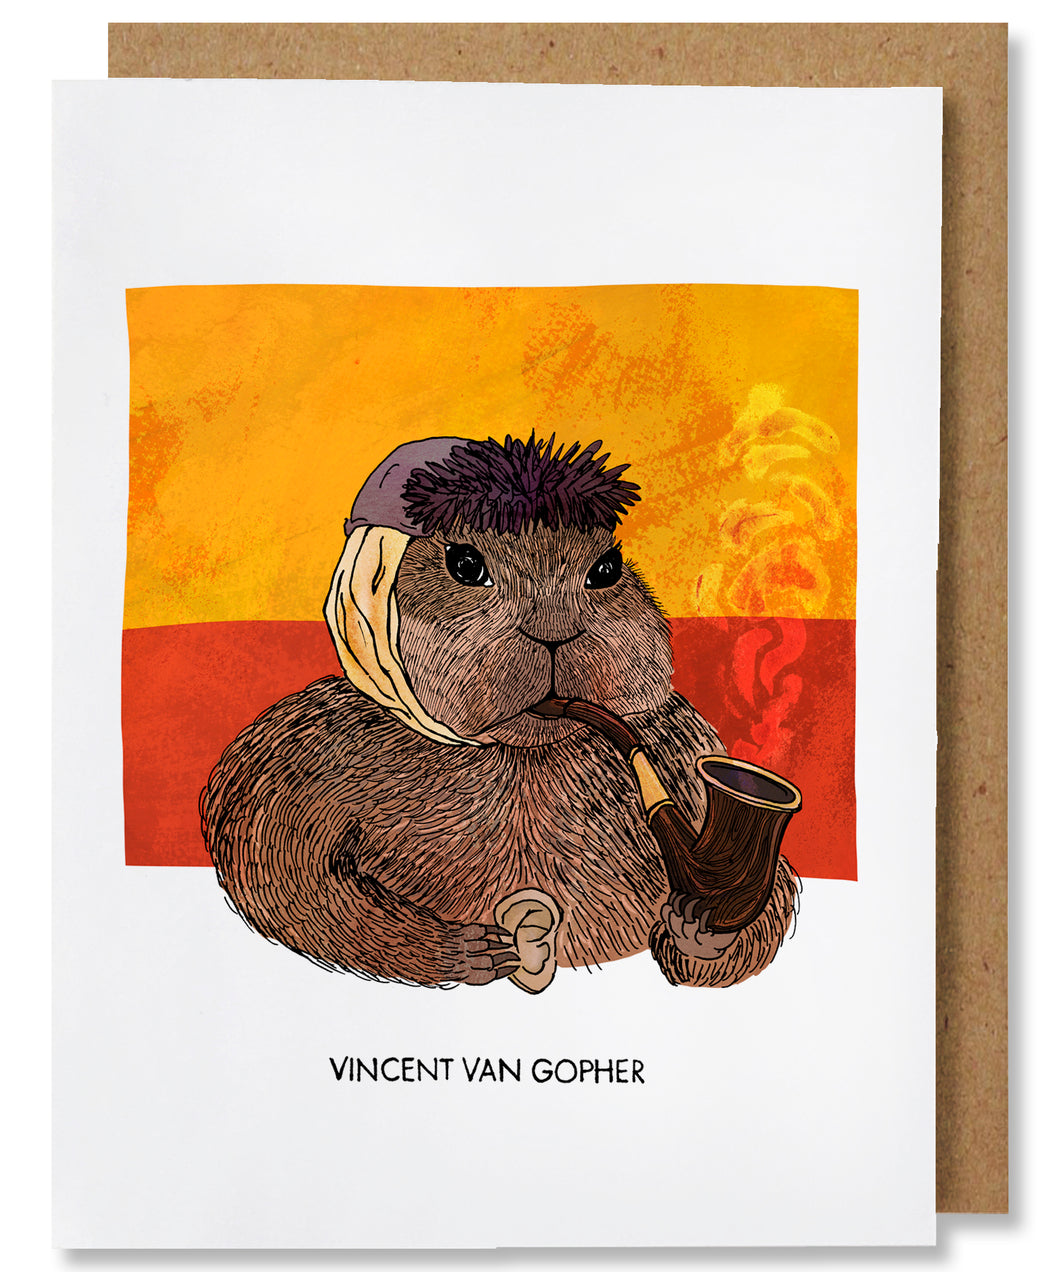 The Vincent van Gopher greeting card depicts Vincent van Gogh as a gopher. The gopher is facing the right, wearing a grey blue winter hat, and has a bandaged ear. He is holding a wooden smoking pipe in his left paw with hints of smoke coming up and holding a human ear in his right paw, a nod to van Gogh cutting off his ear. The background has two horizontal blocks of swirly colors, yellow on top of red. This card is placed with a brown kraft envelope.